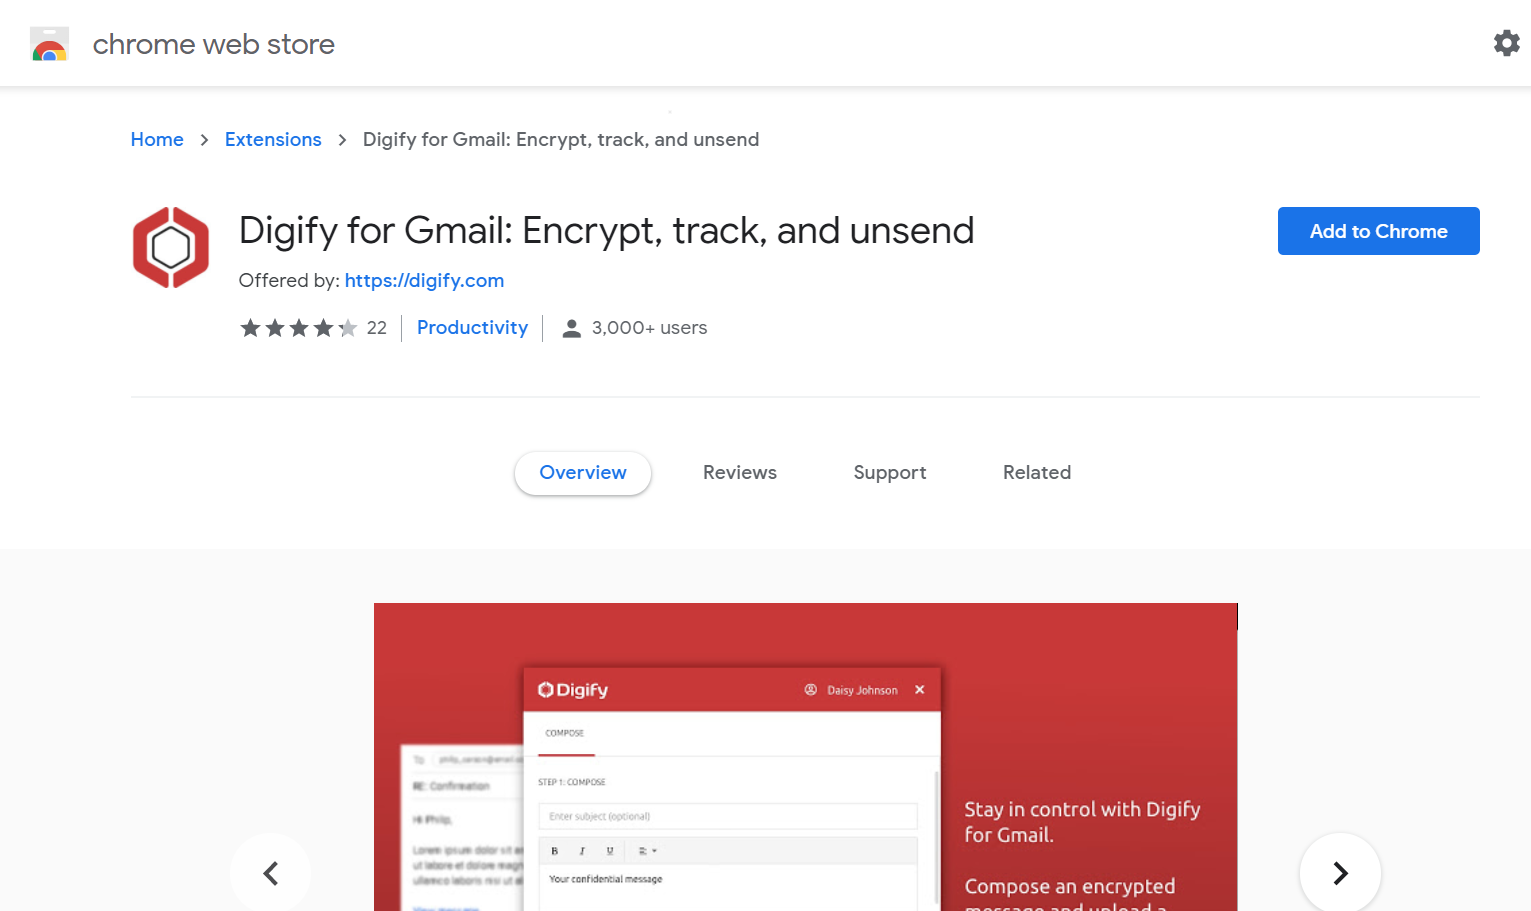 Digify for Gmail